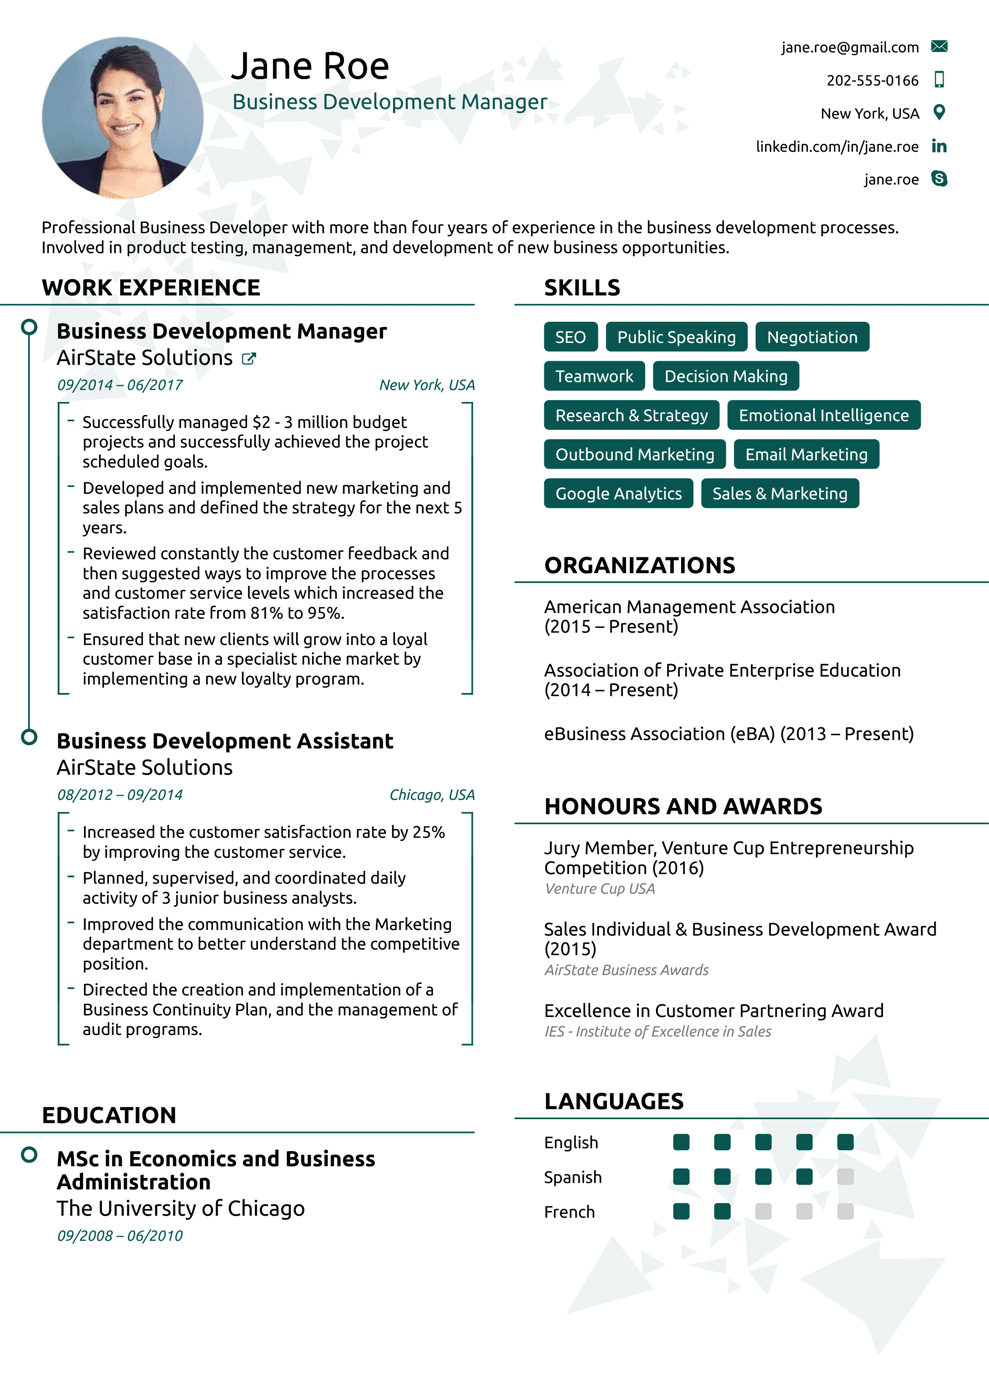 young professional resume template  How to Make or Write a Professional Resume or CV ..